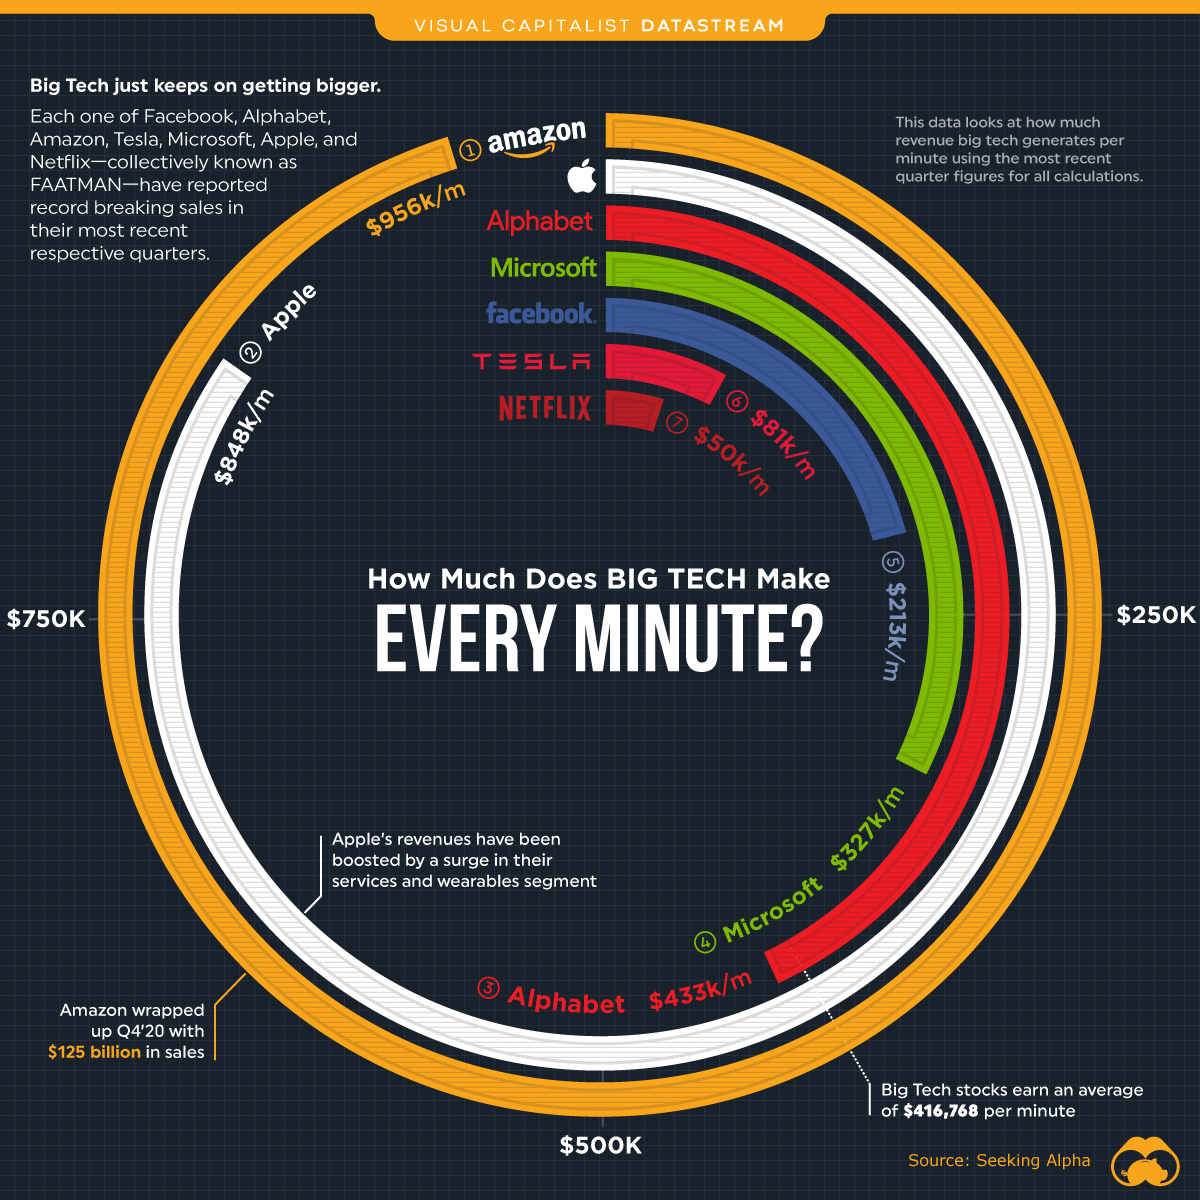 How much big tech makes every minute